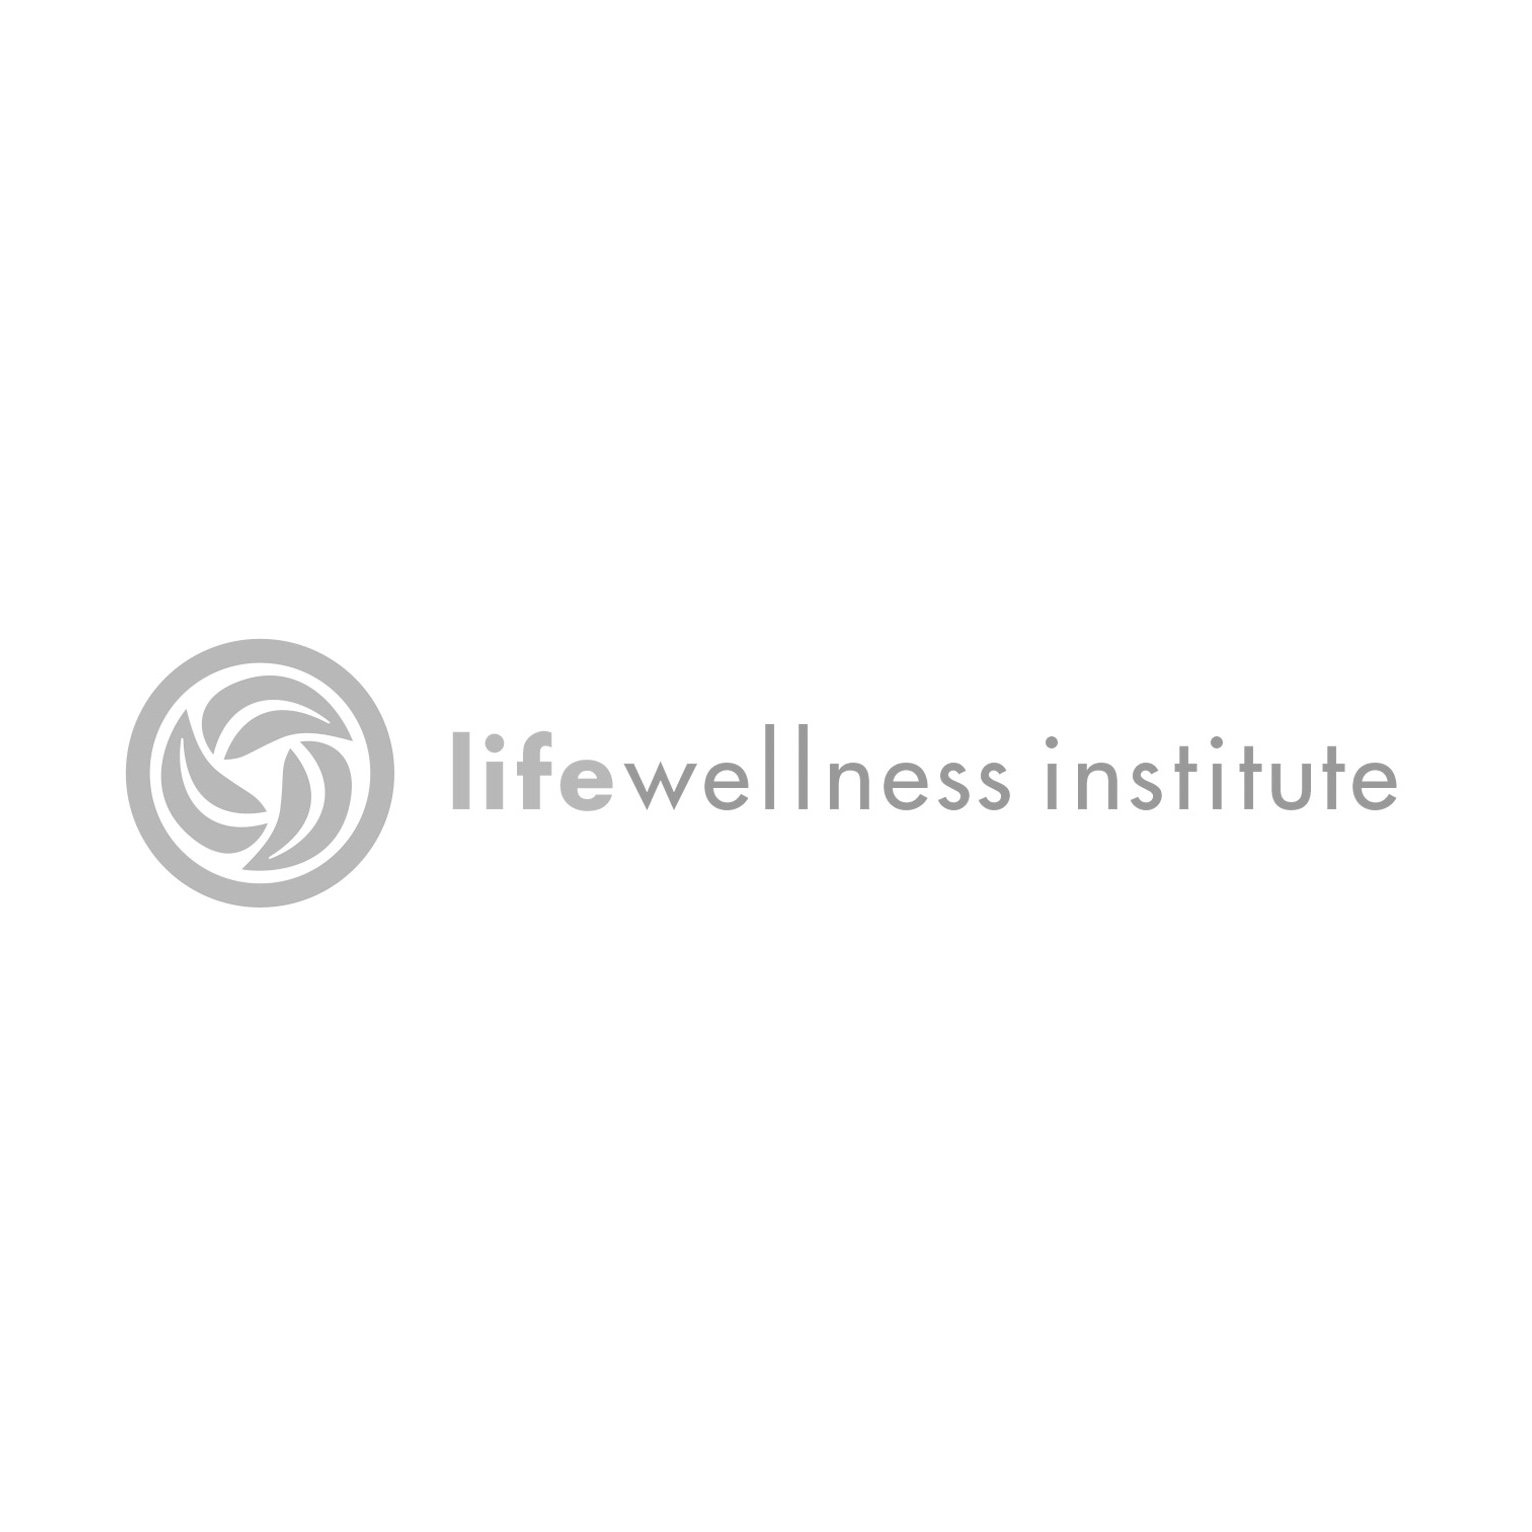 img_partner_logo_lifewellness_square.jpg